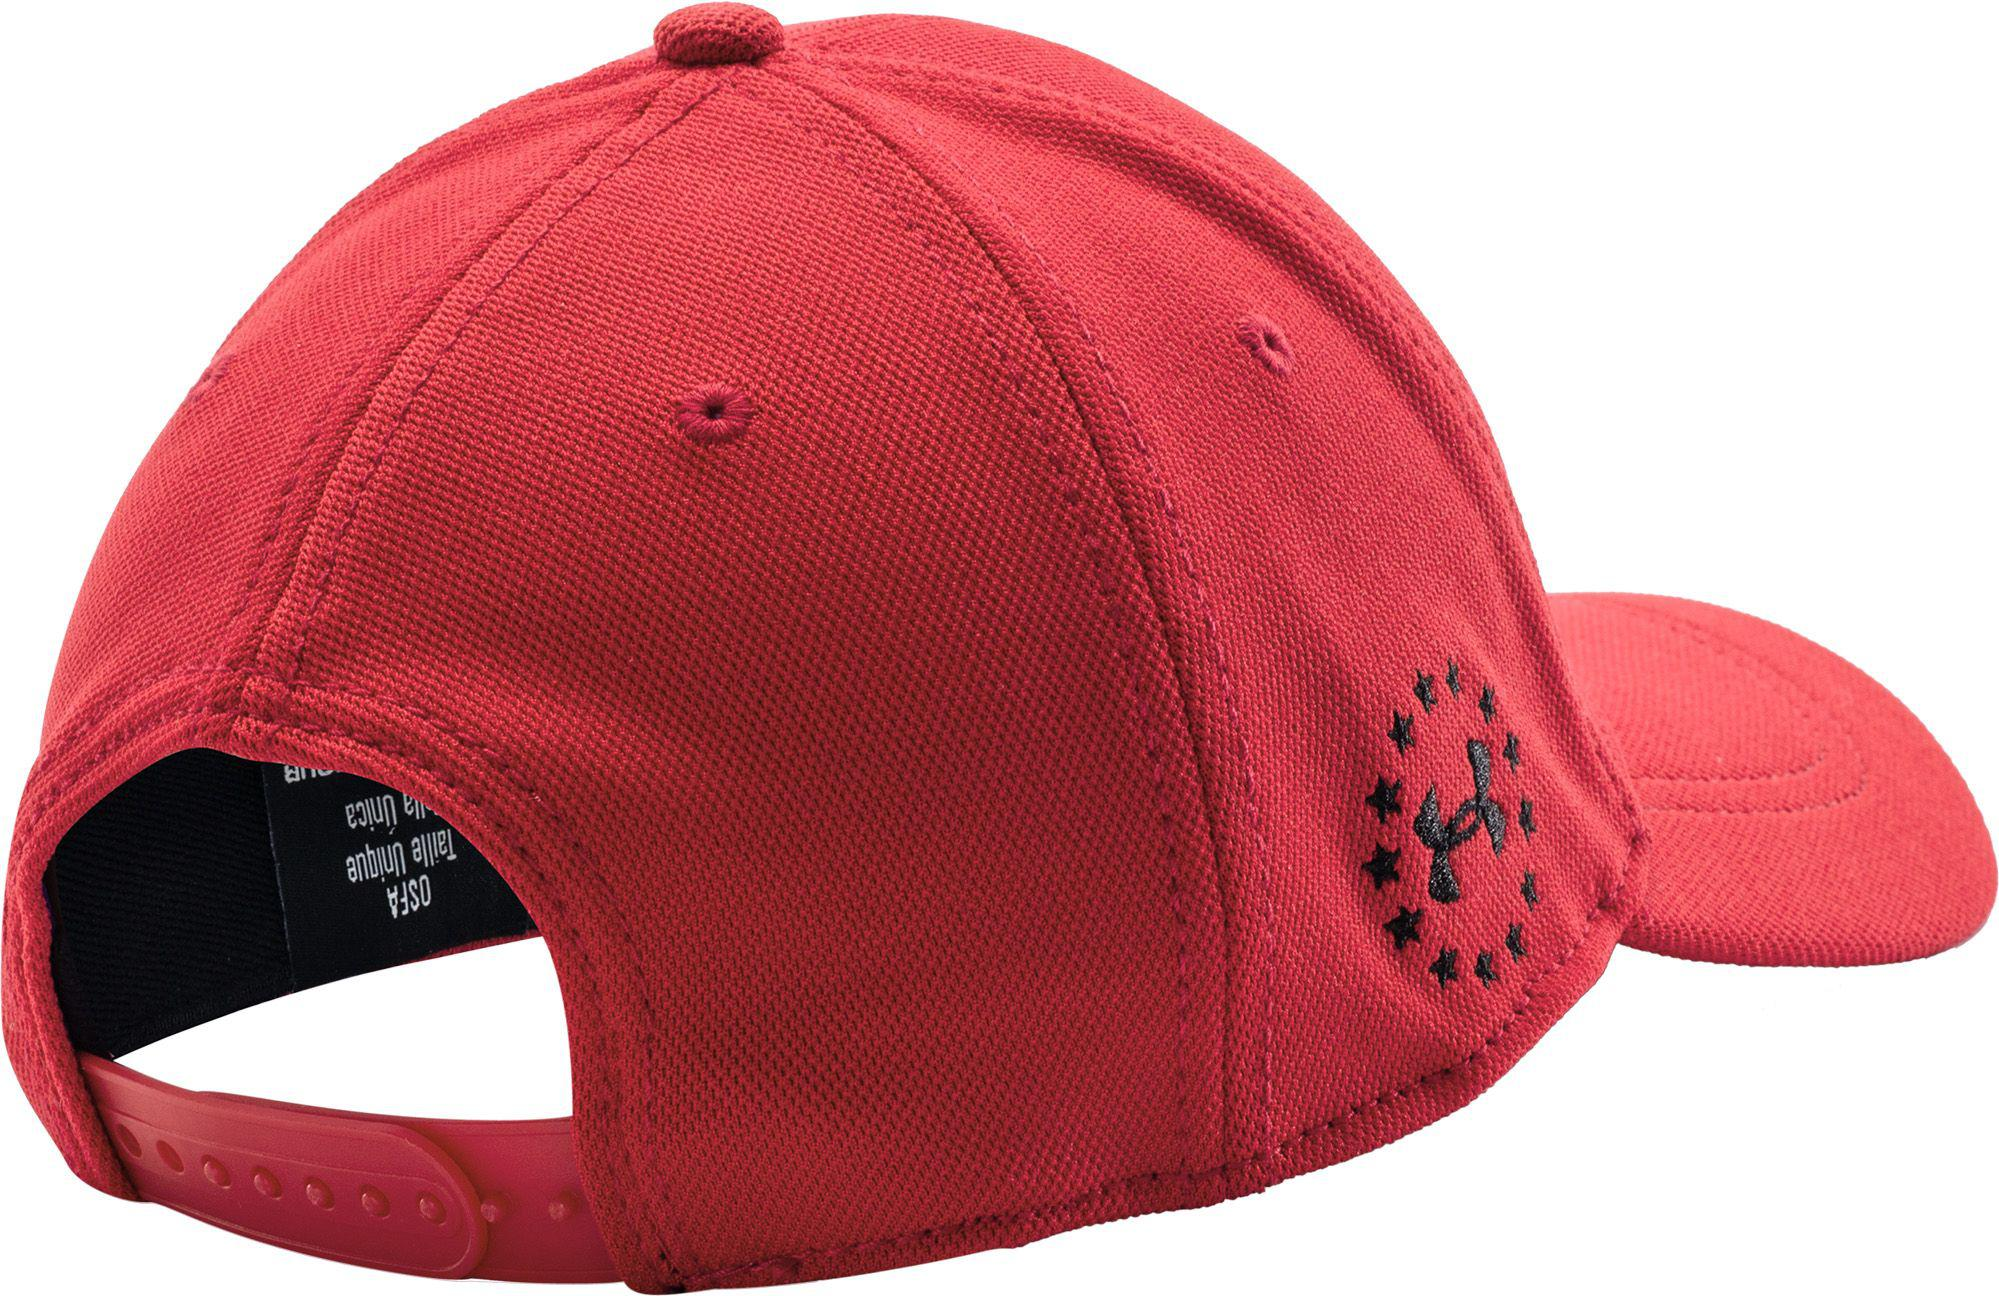 d69c2d6ca3c Lyst - Under Armour Wounded Warrior Project Snapback Hat in Red for Men